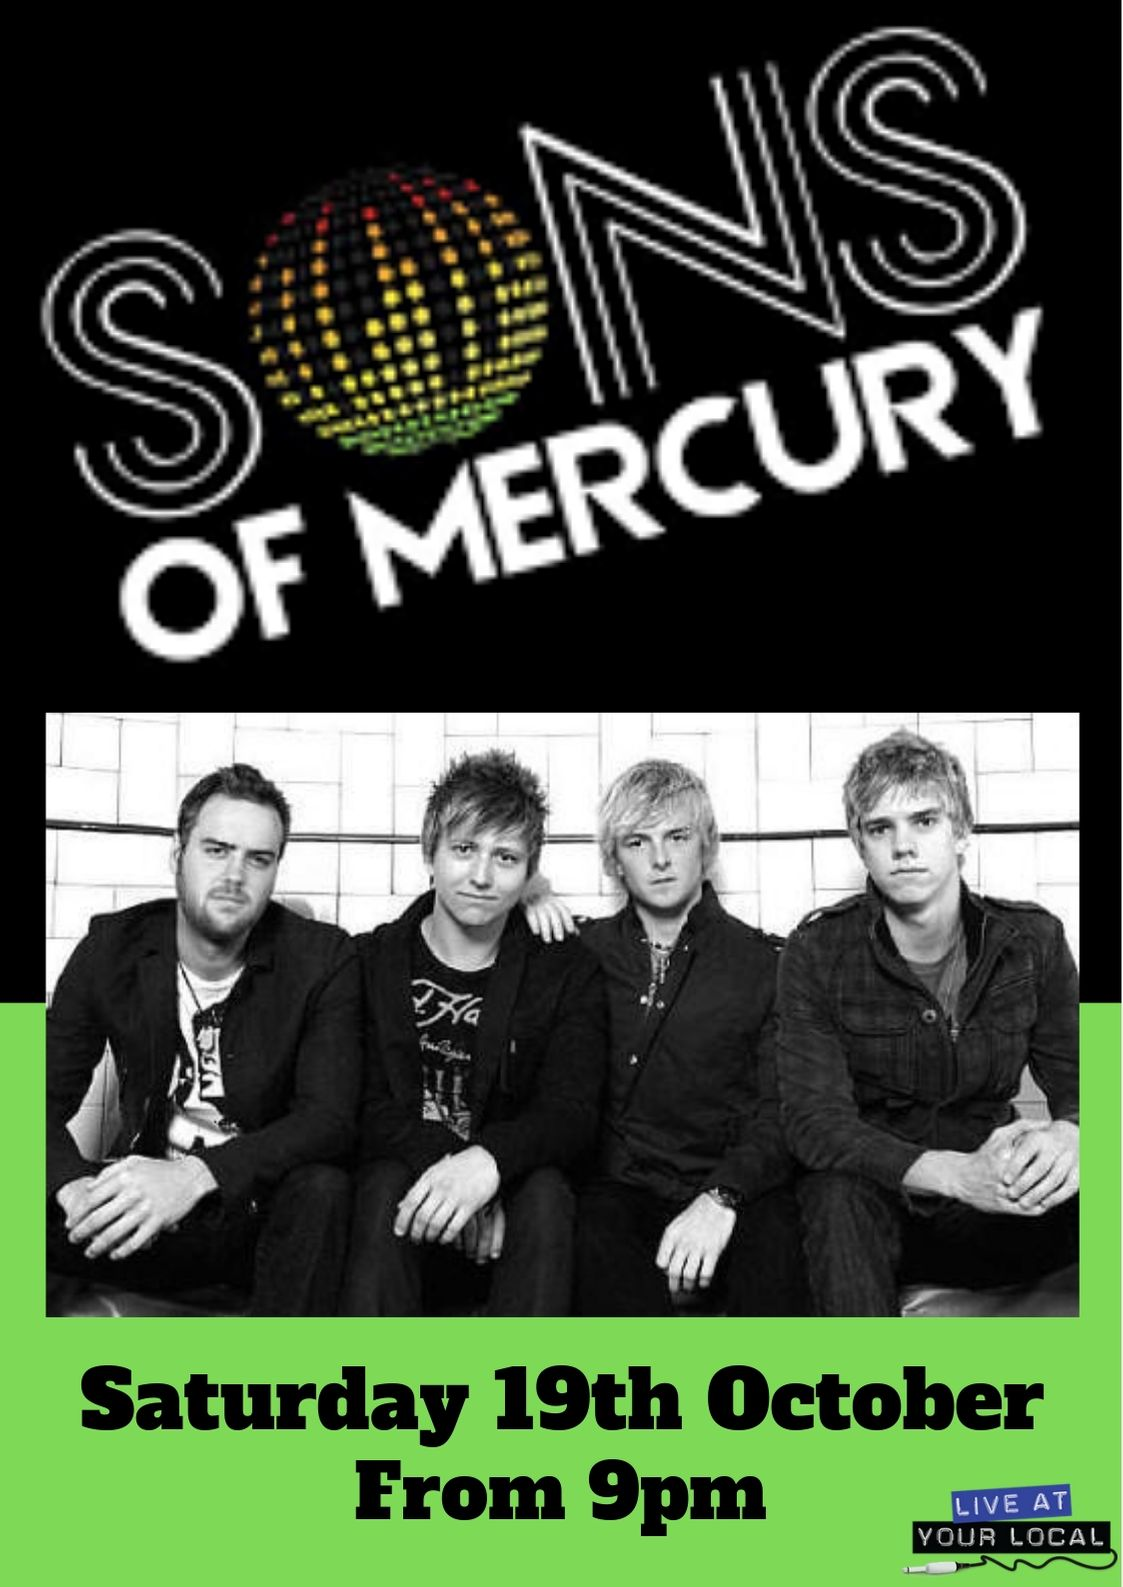 Sons-of-Mercury